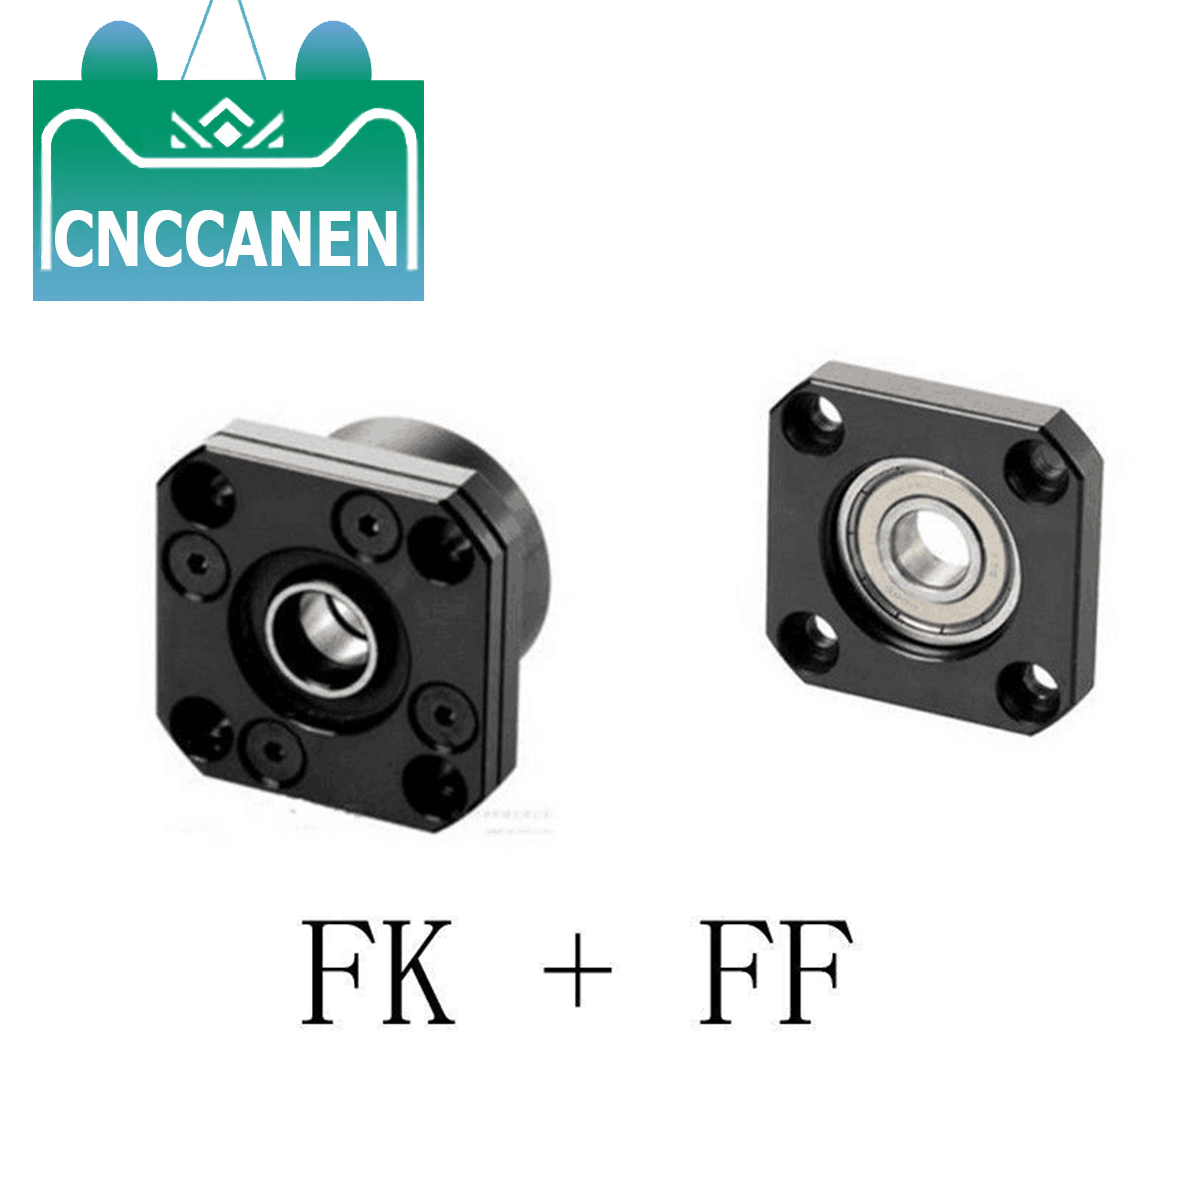 1 Set <font><b>FK10</b></font> 12 15 20 25 30 FF10 12 15 20 25 30 Fixed Floated End Supports Bearing Mounts for Ball Screw SFU1204 1604 1605 image